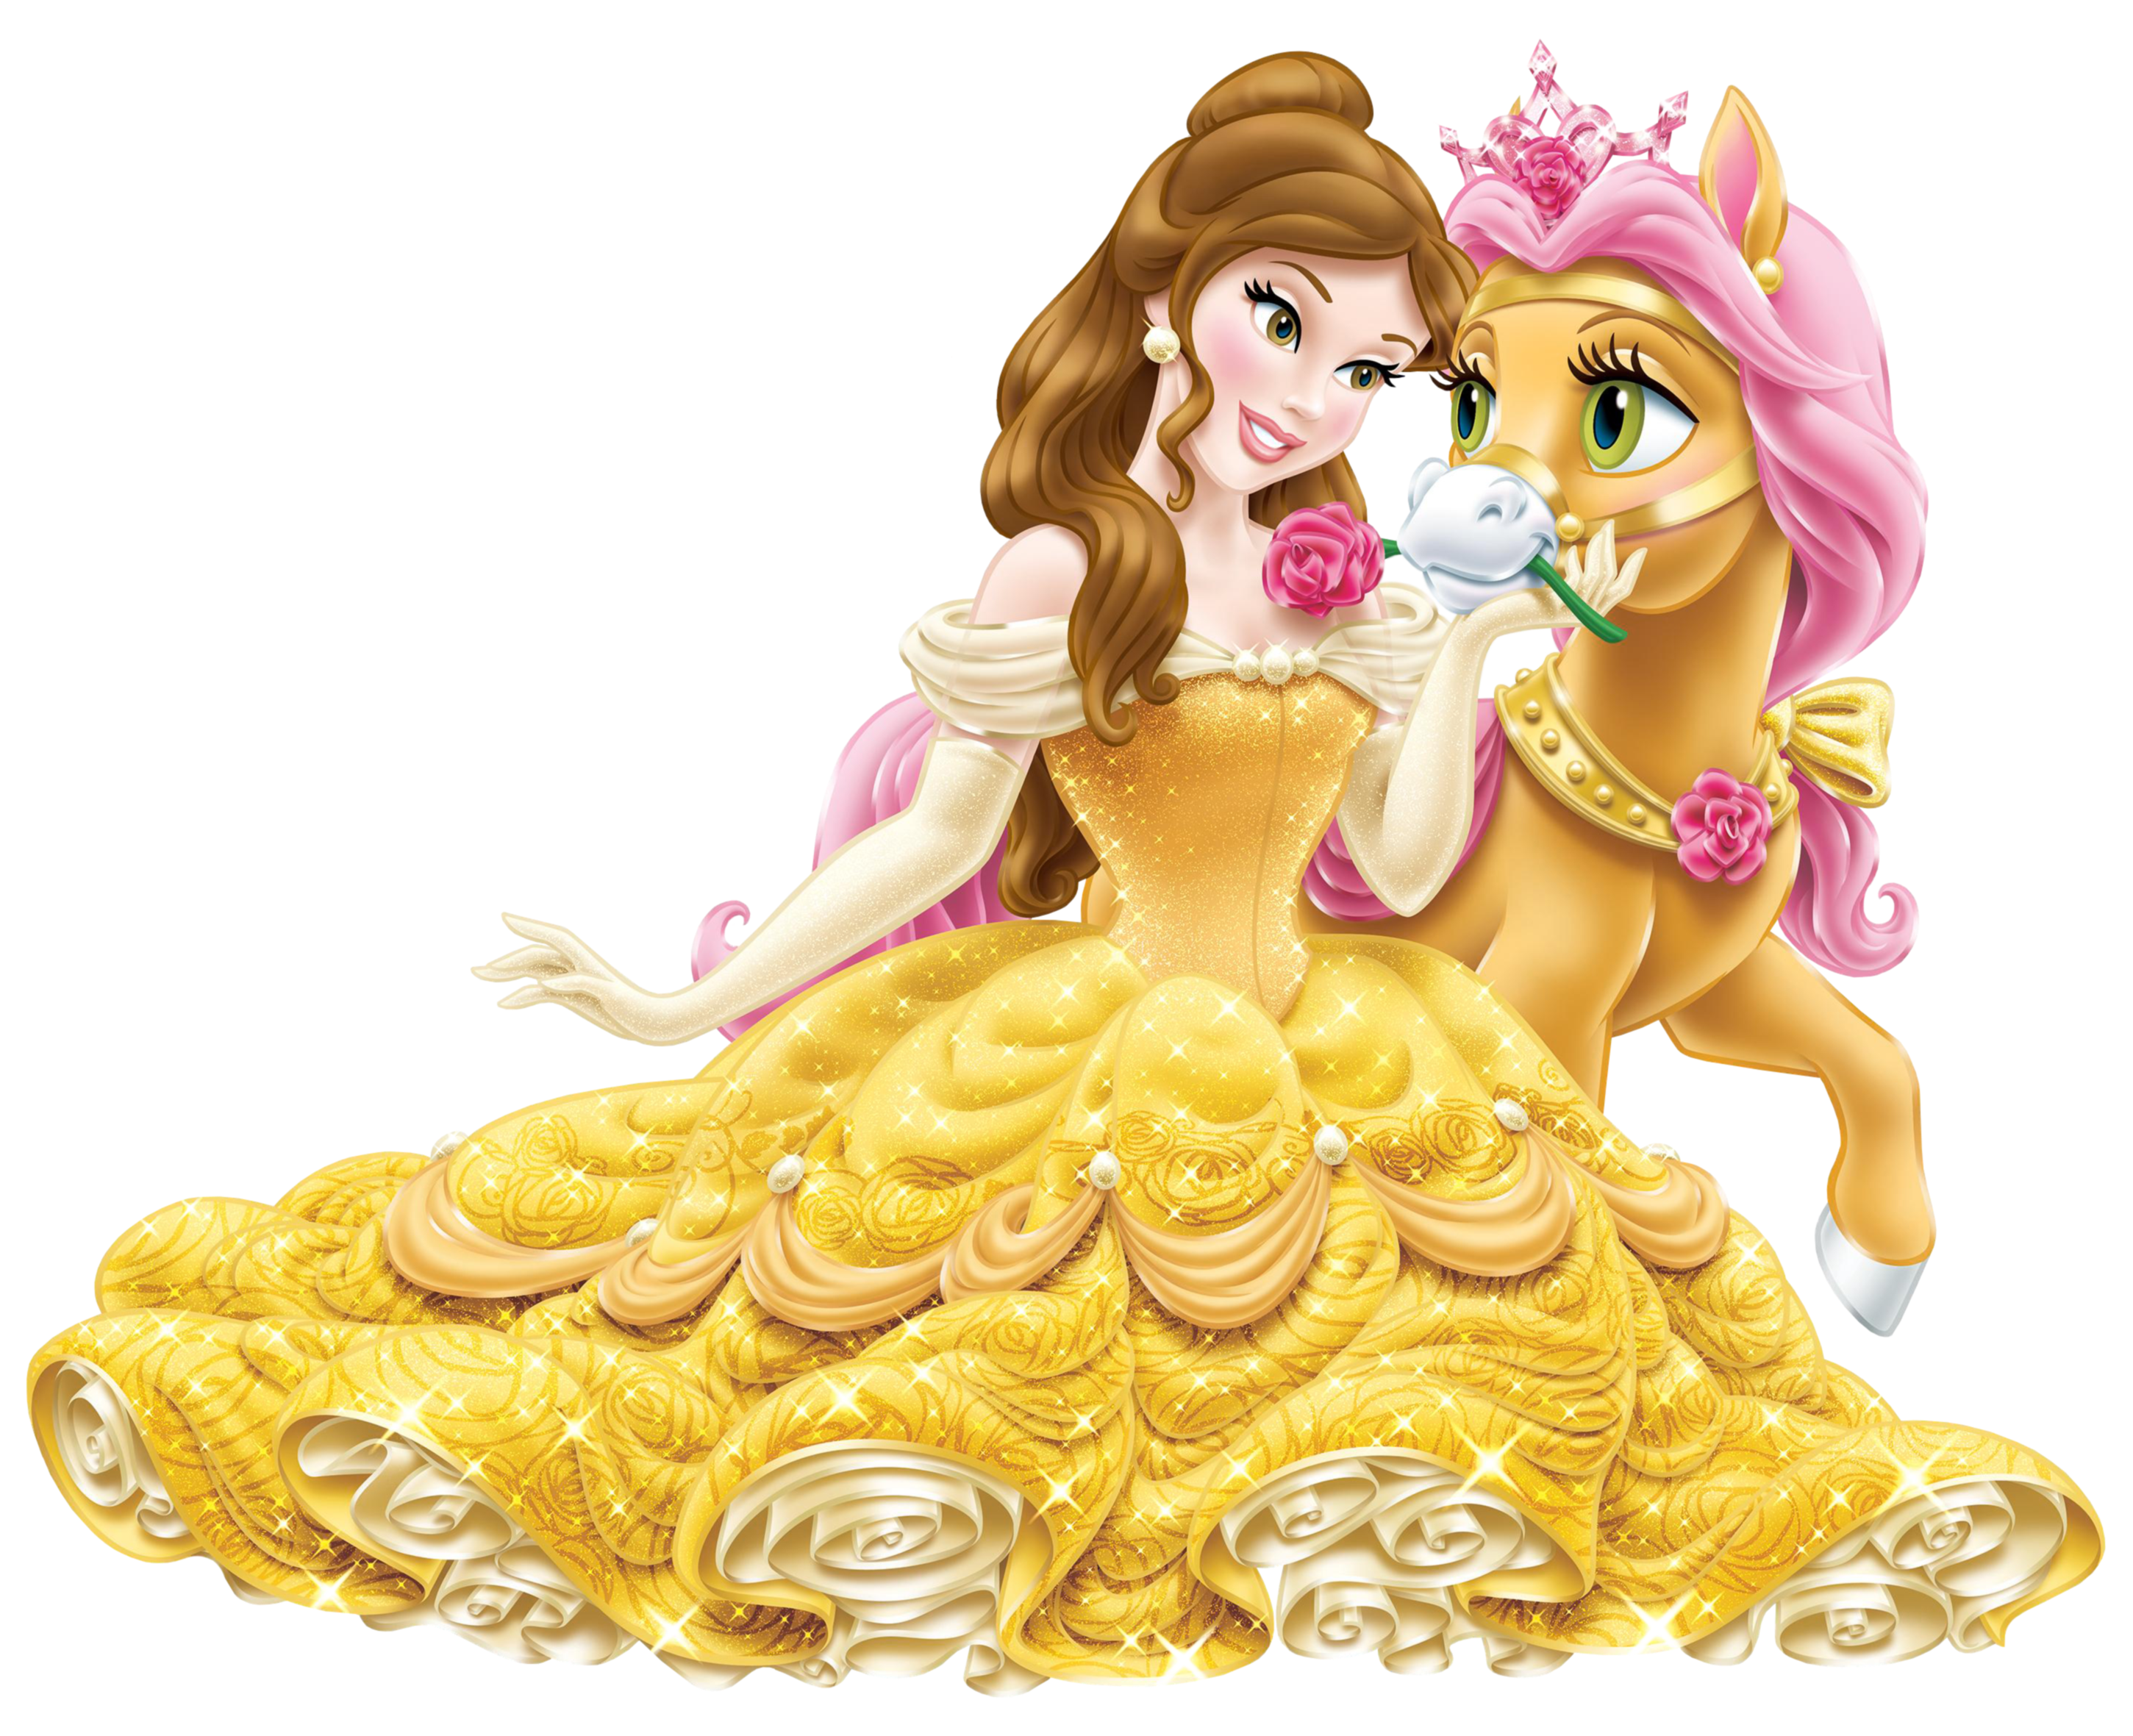 Disney princess belle png. With cute pony transparent